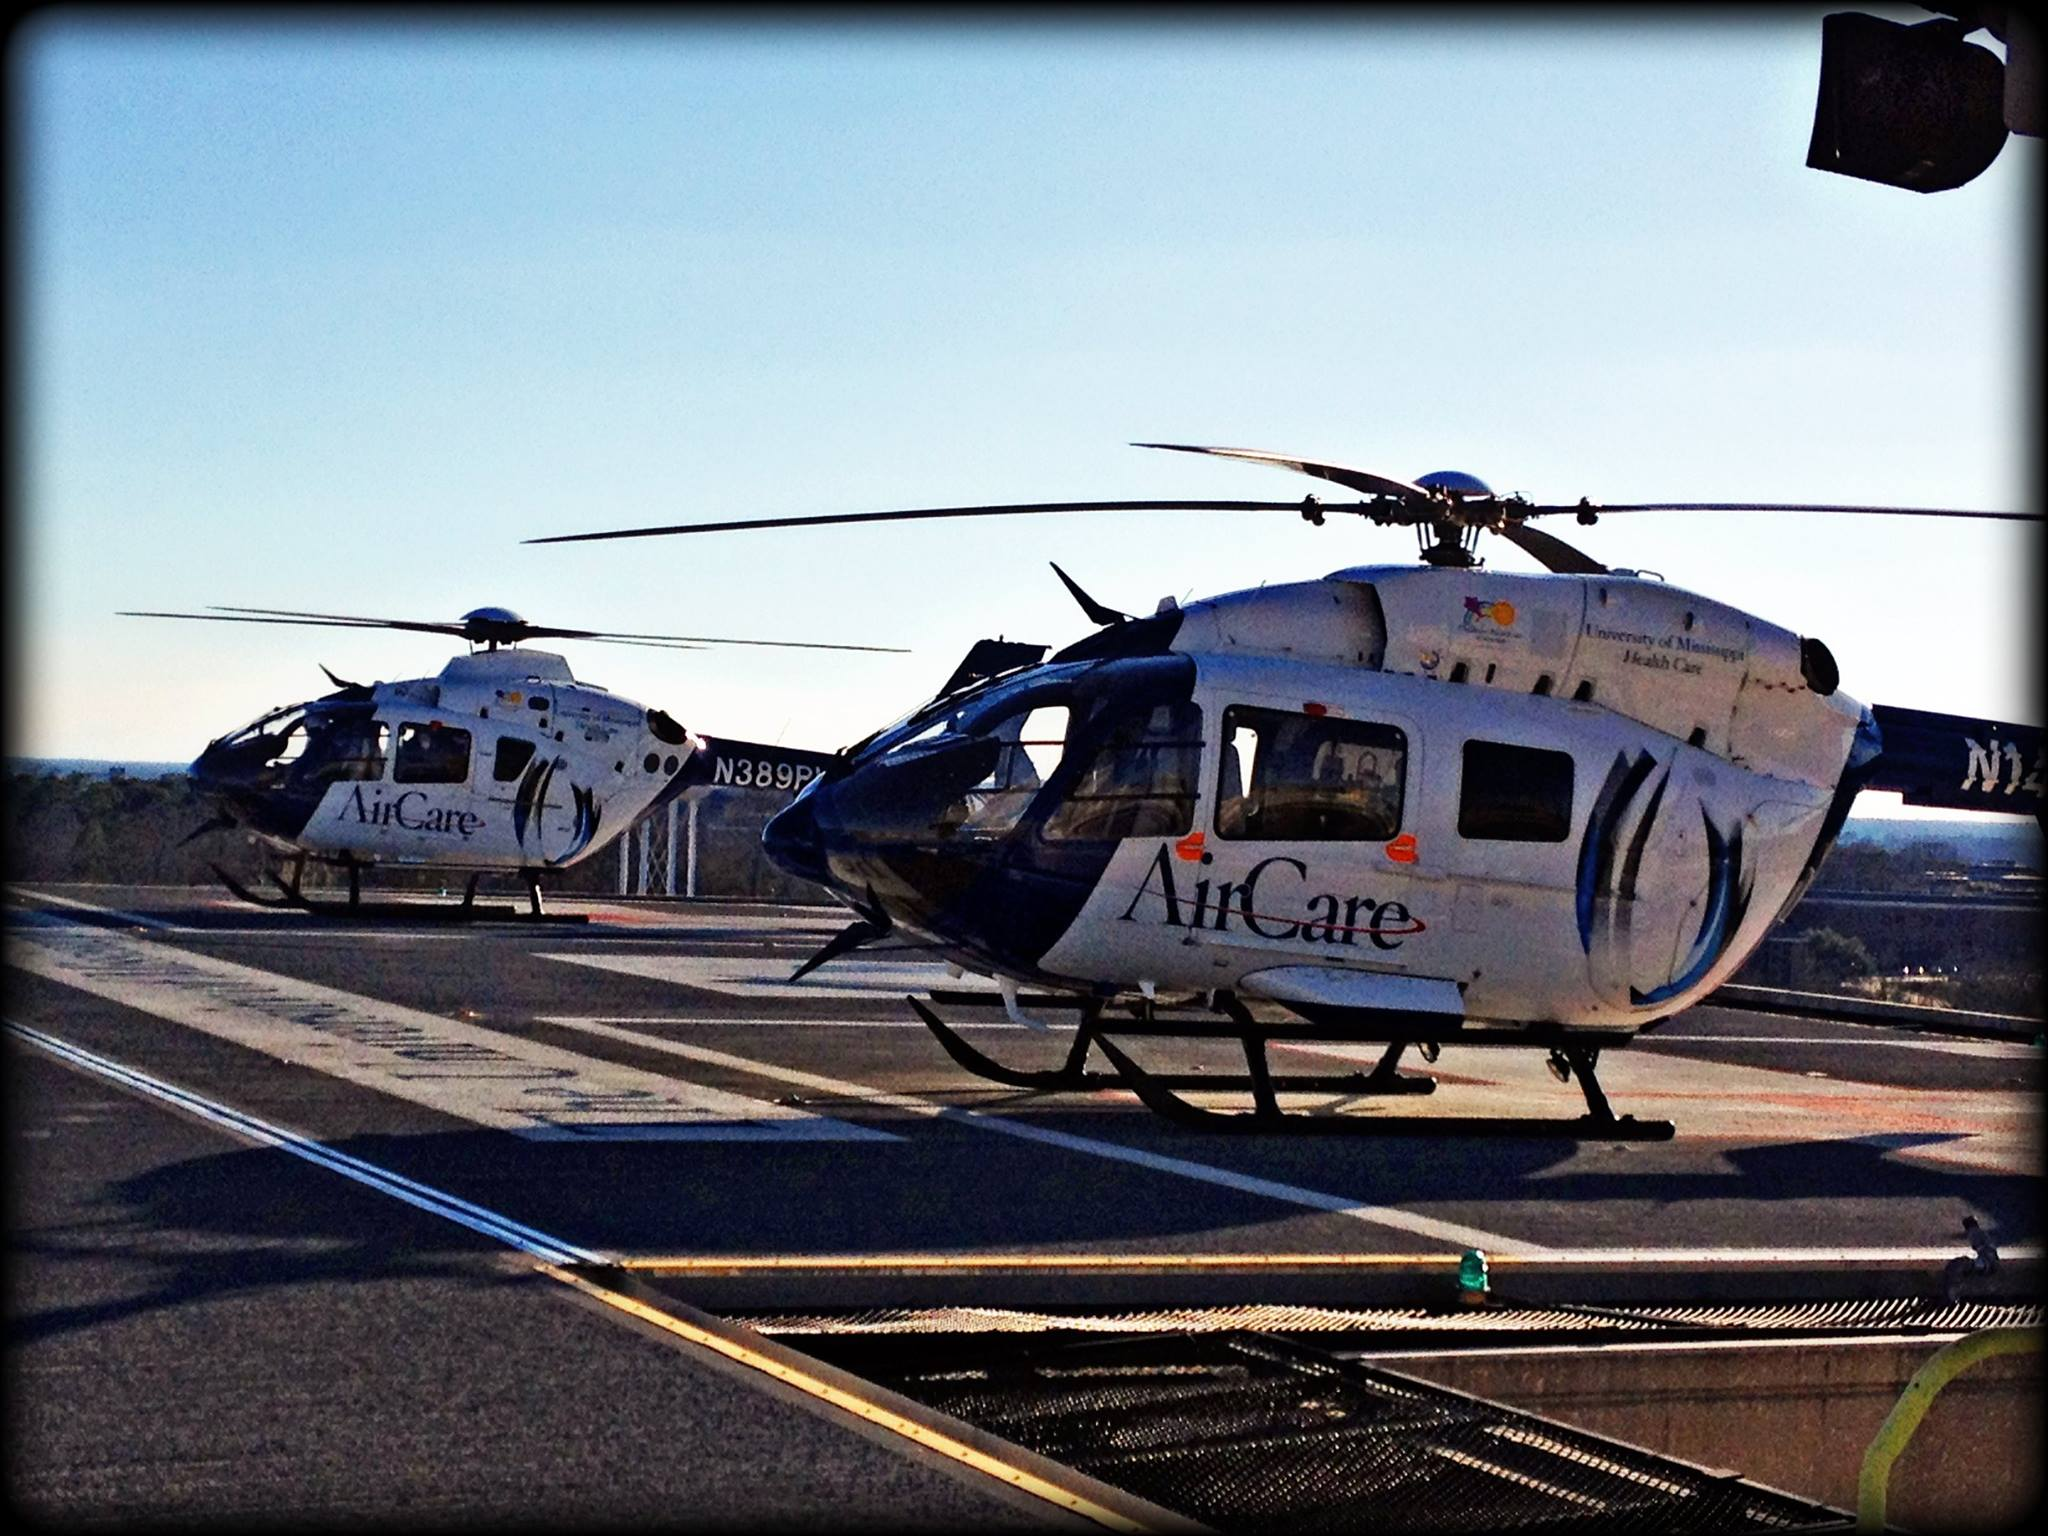 AirCare 1 and AirCare 2 on the deck at UMMC